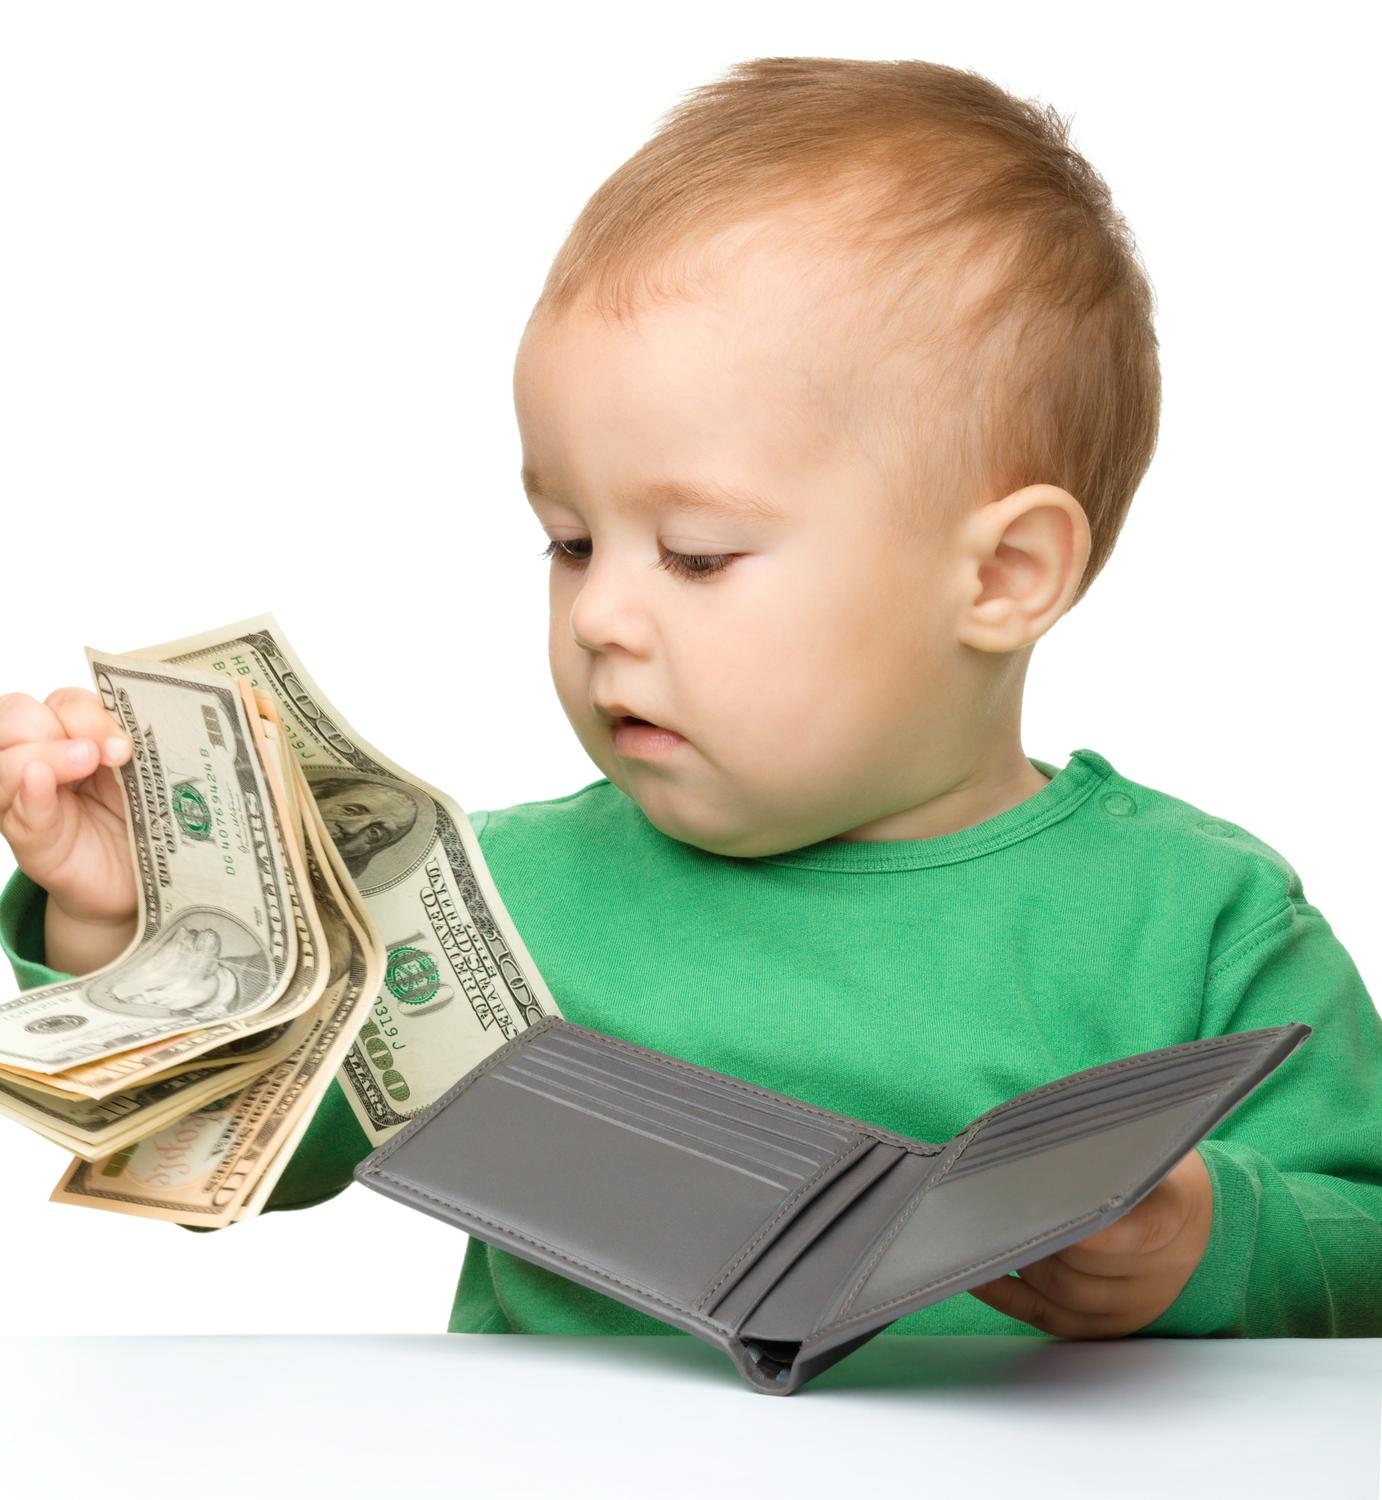 Image result for baby with money